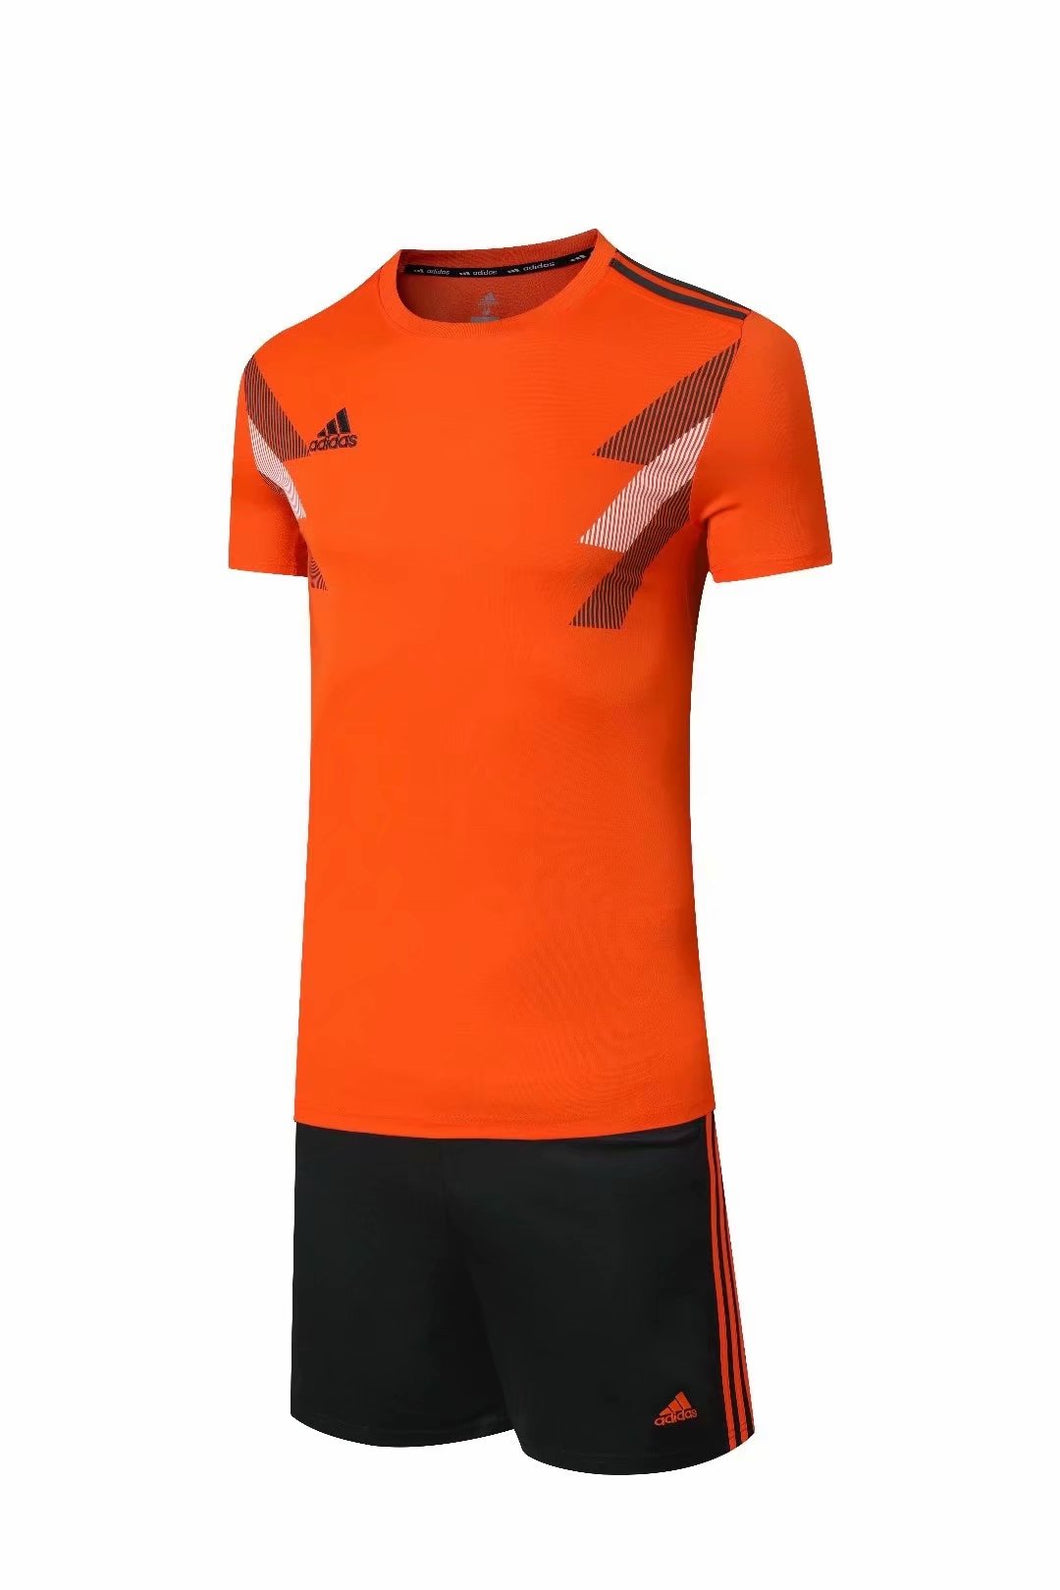 Adidas Full Football Kit Adult Sizes only - Orange with Black and White Chest graphic